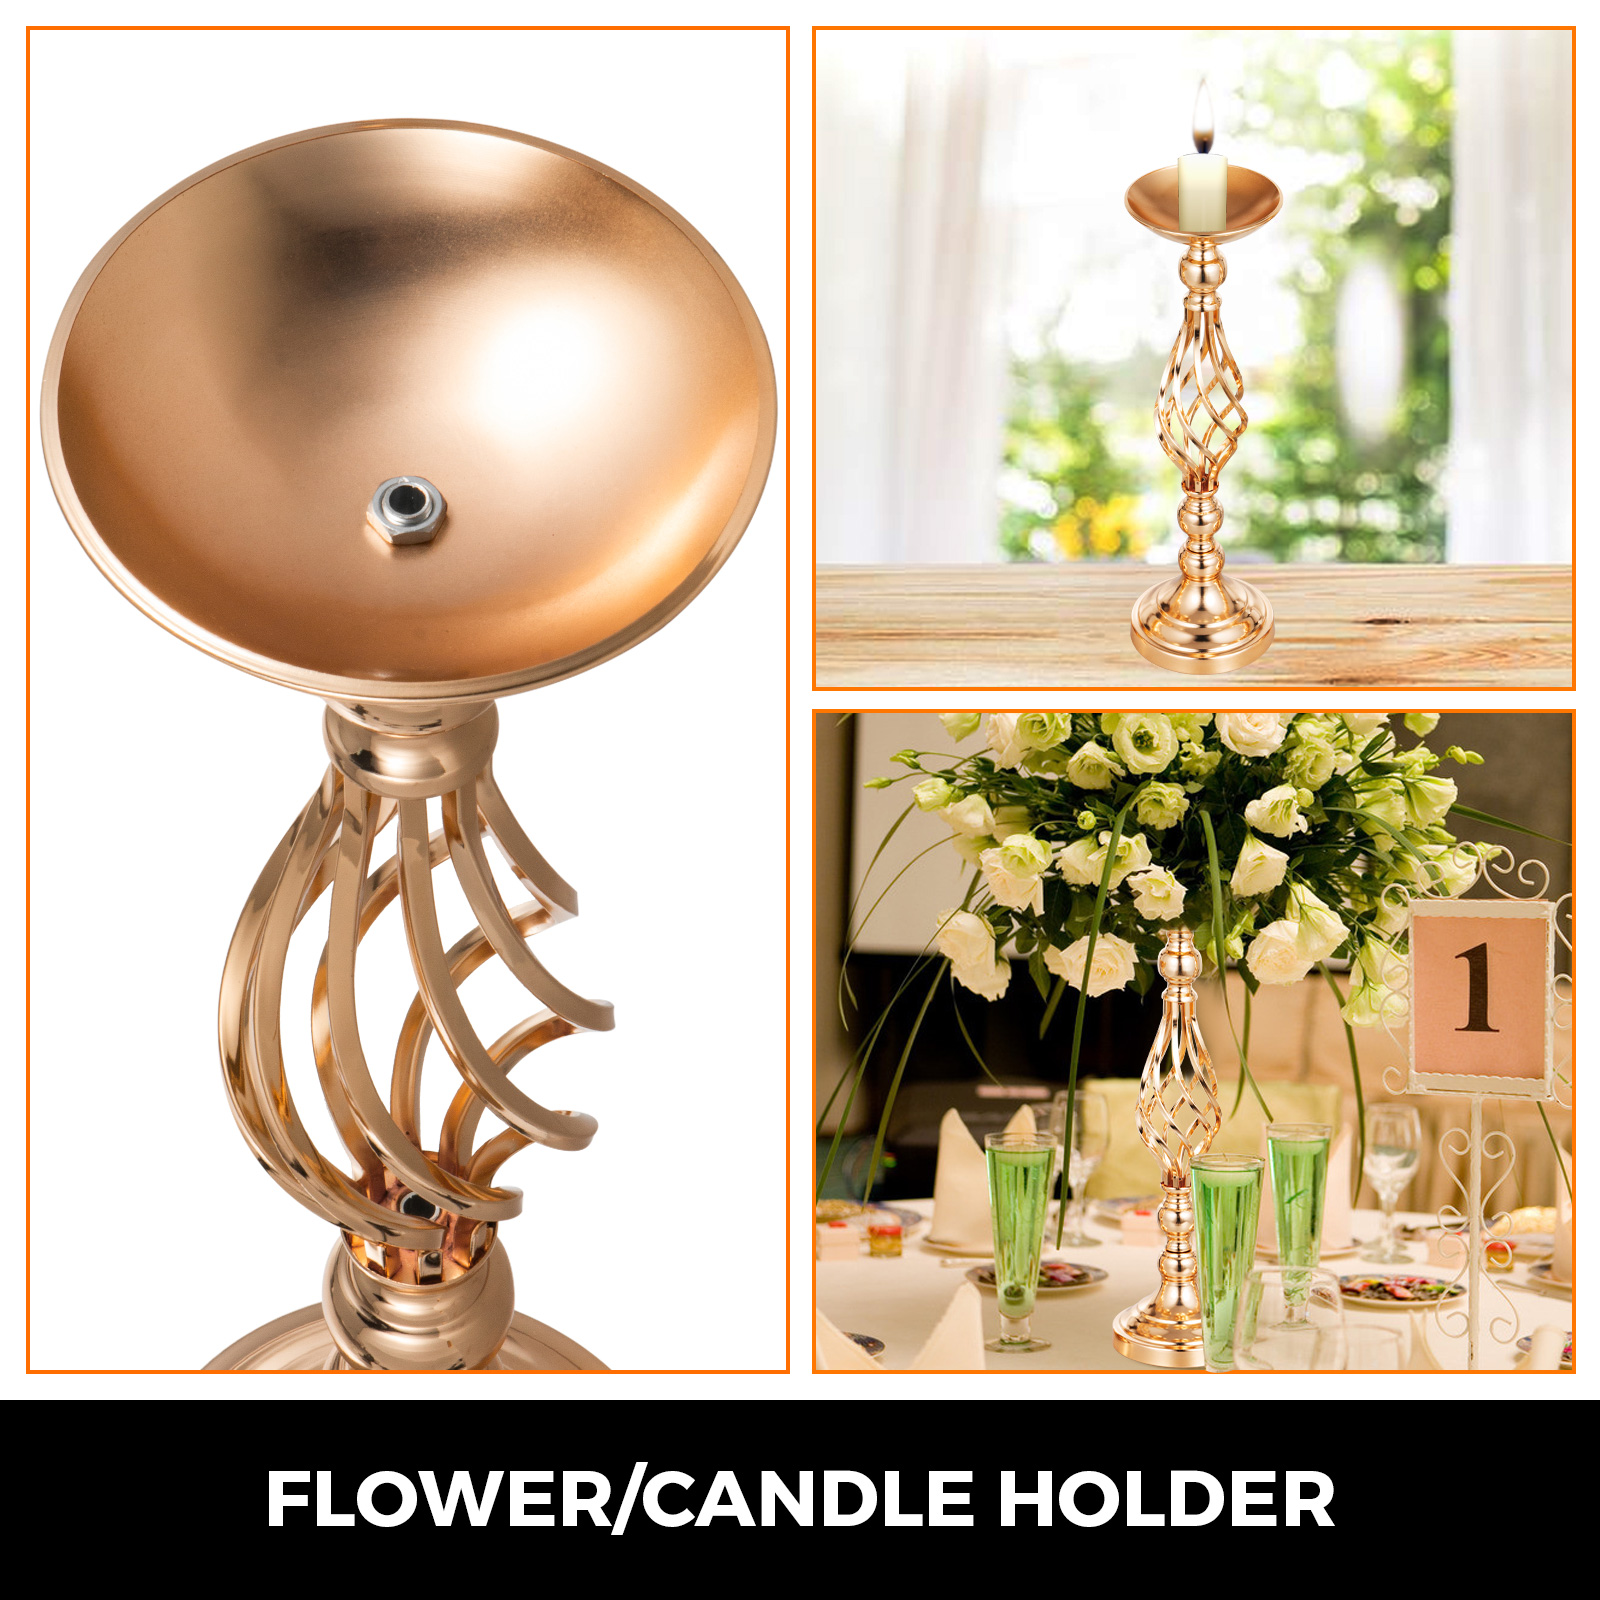 Flower-Rack-for-Wedding-Metal-Candle-Stand-4-11pcs-Centerpiece-Flower-Vase thumbnail 63